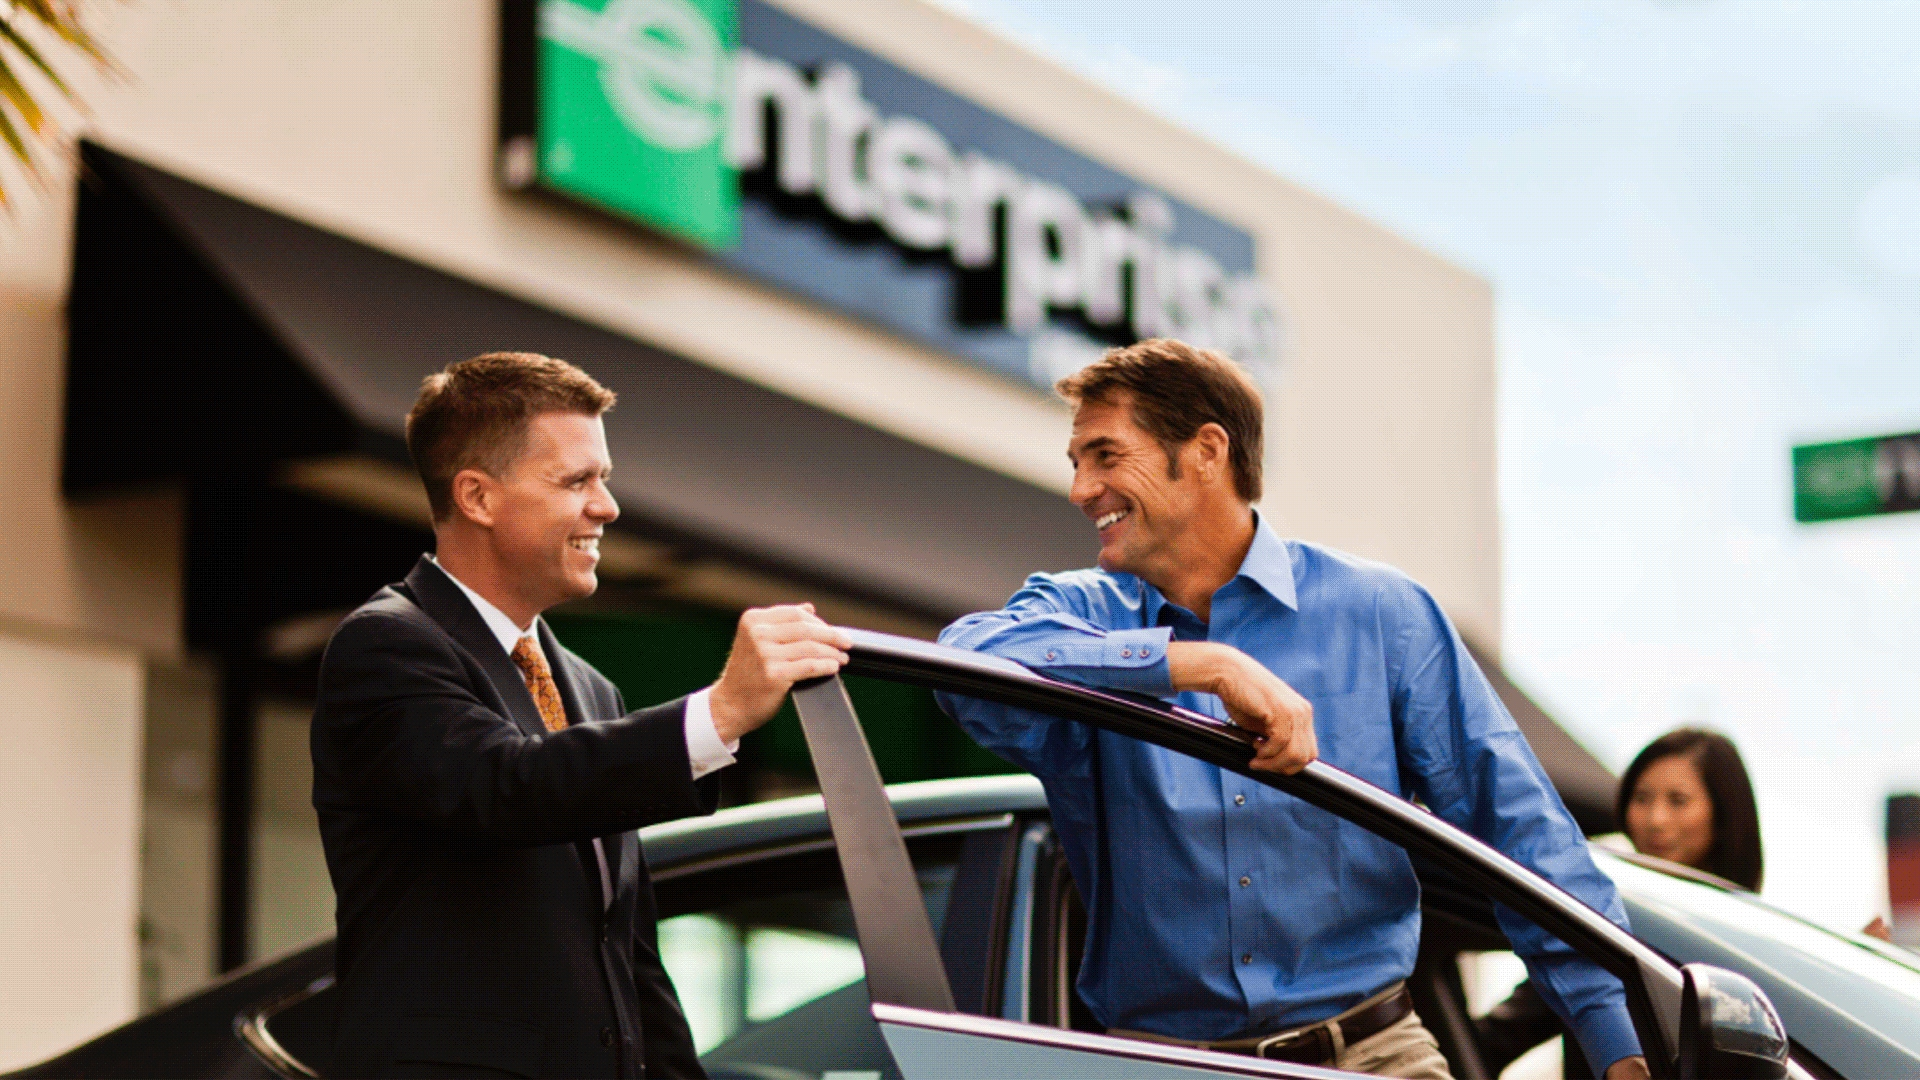 Closest enterprise rent a car to denver airport